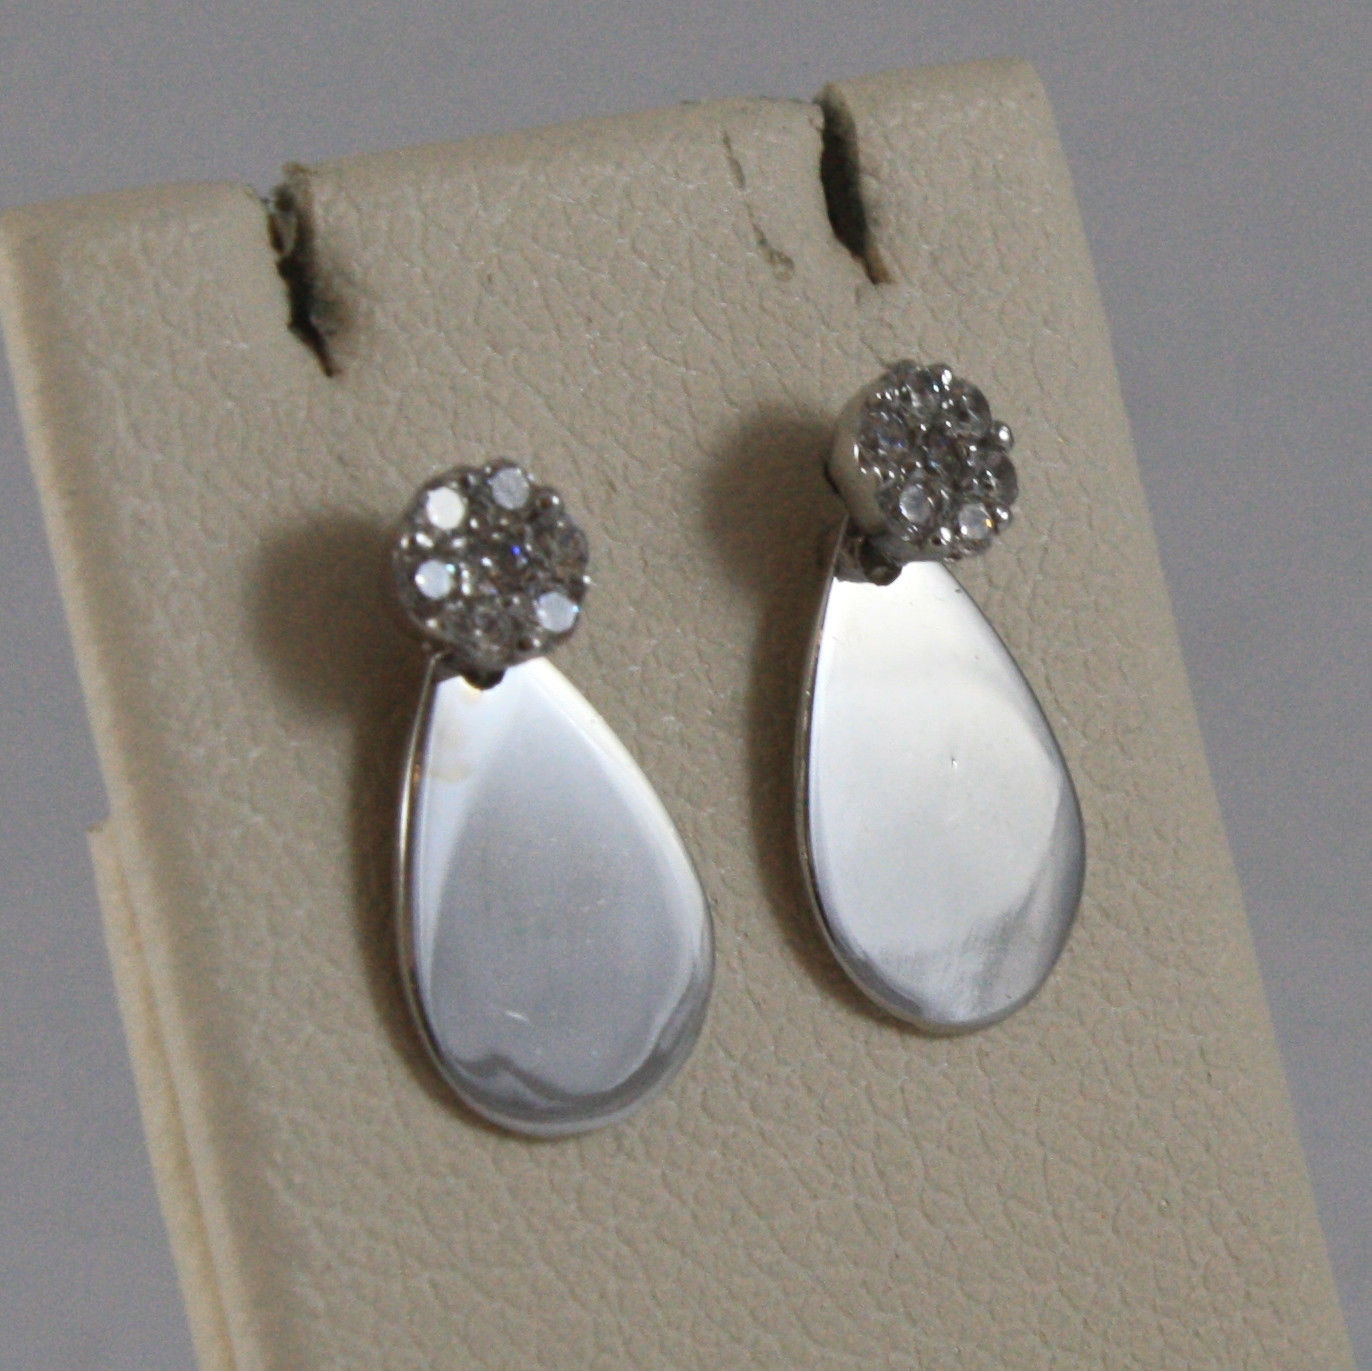 SOLID 18K WHITE GOLD EARRINGS, WITH POLISHED DROP AND ZIRCONIA, MADE IN ITALY